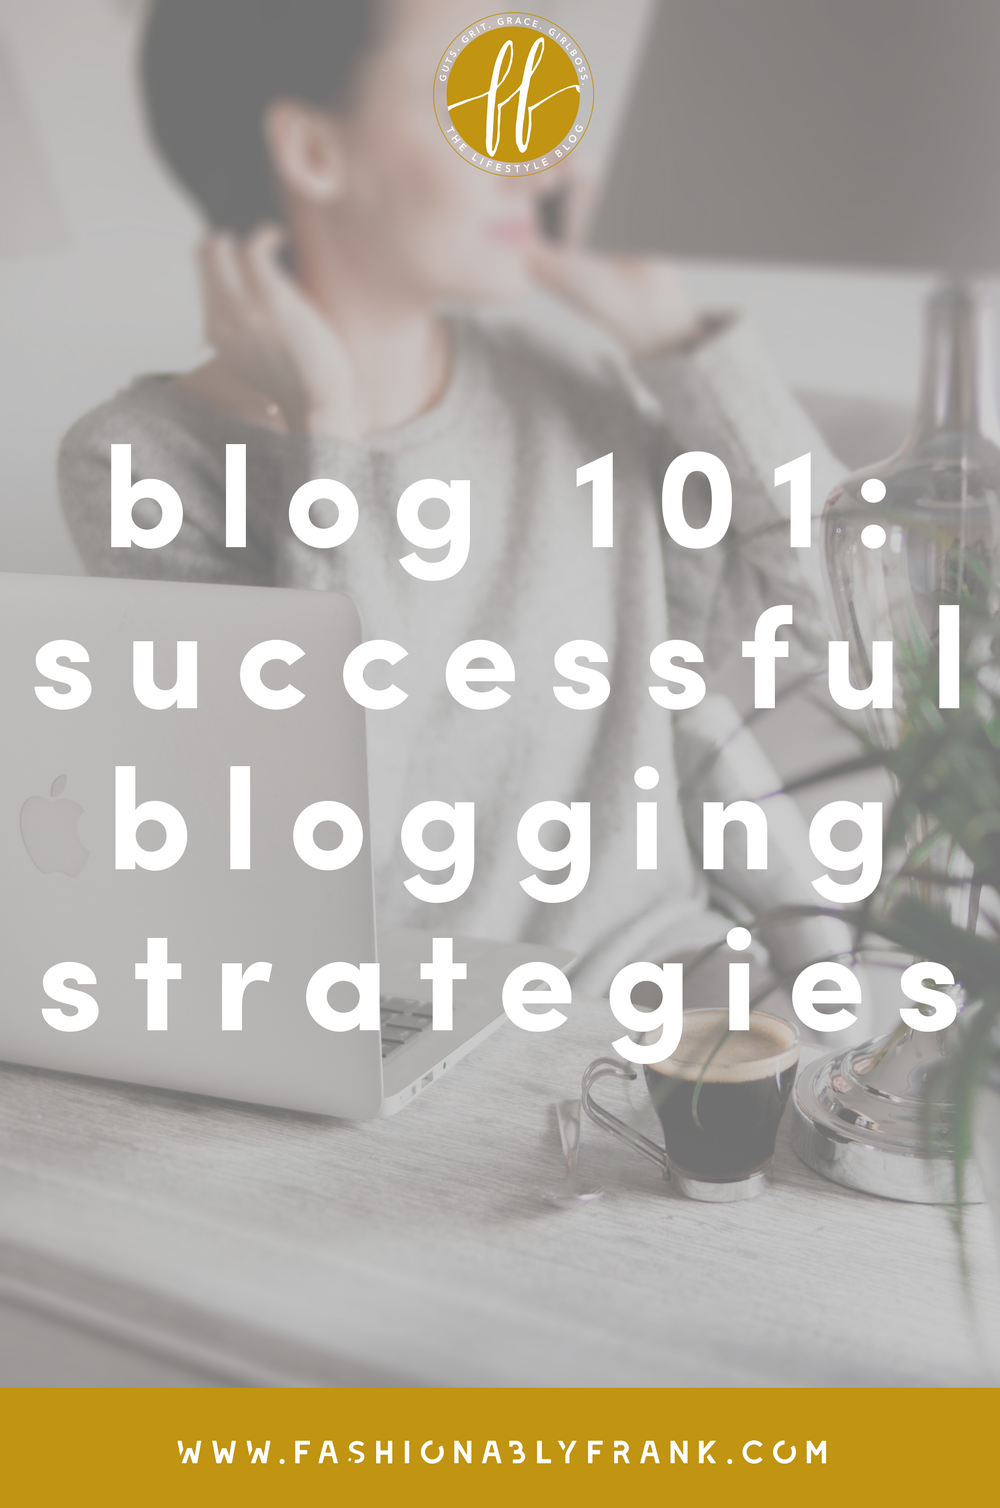 Successful Blogging Strategies